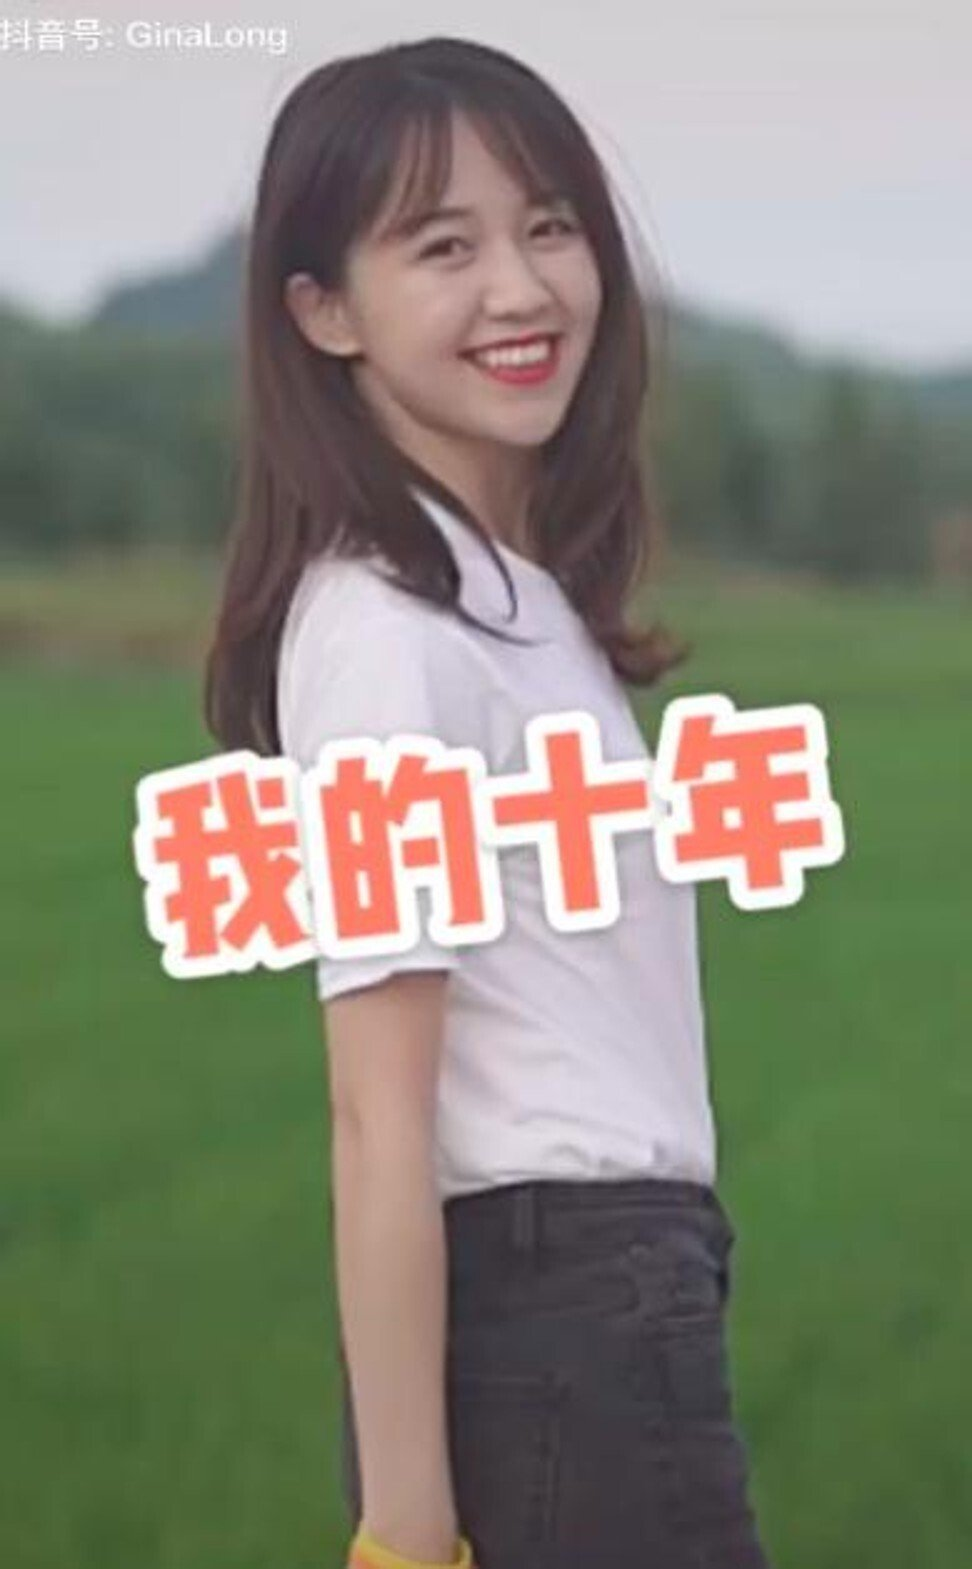 Many have accused Long of using her online profile and to take advantage of poor rural children and the sympathy of donors. Photo: Weibo